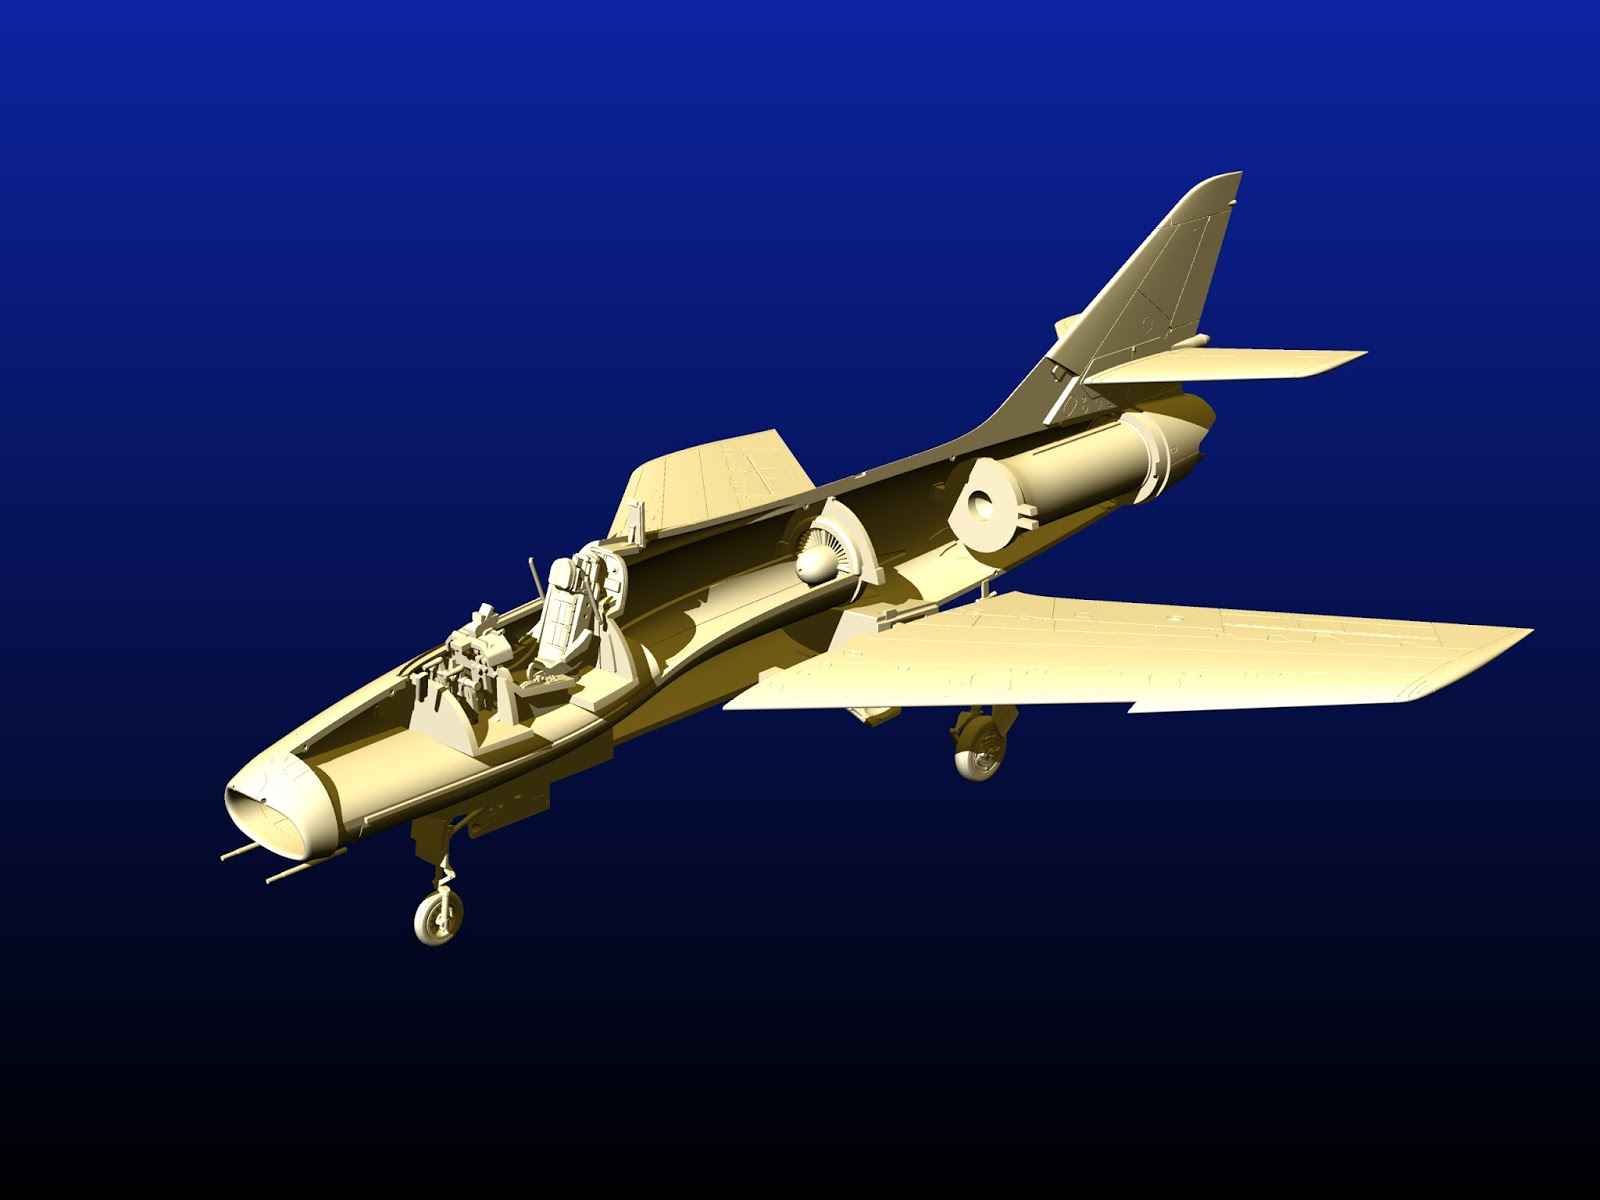 1/72 - Dassault Super Mystère B2 (SMB2) by Special Hobby / Azur-FROMM - CADs - release in 2017 ...